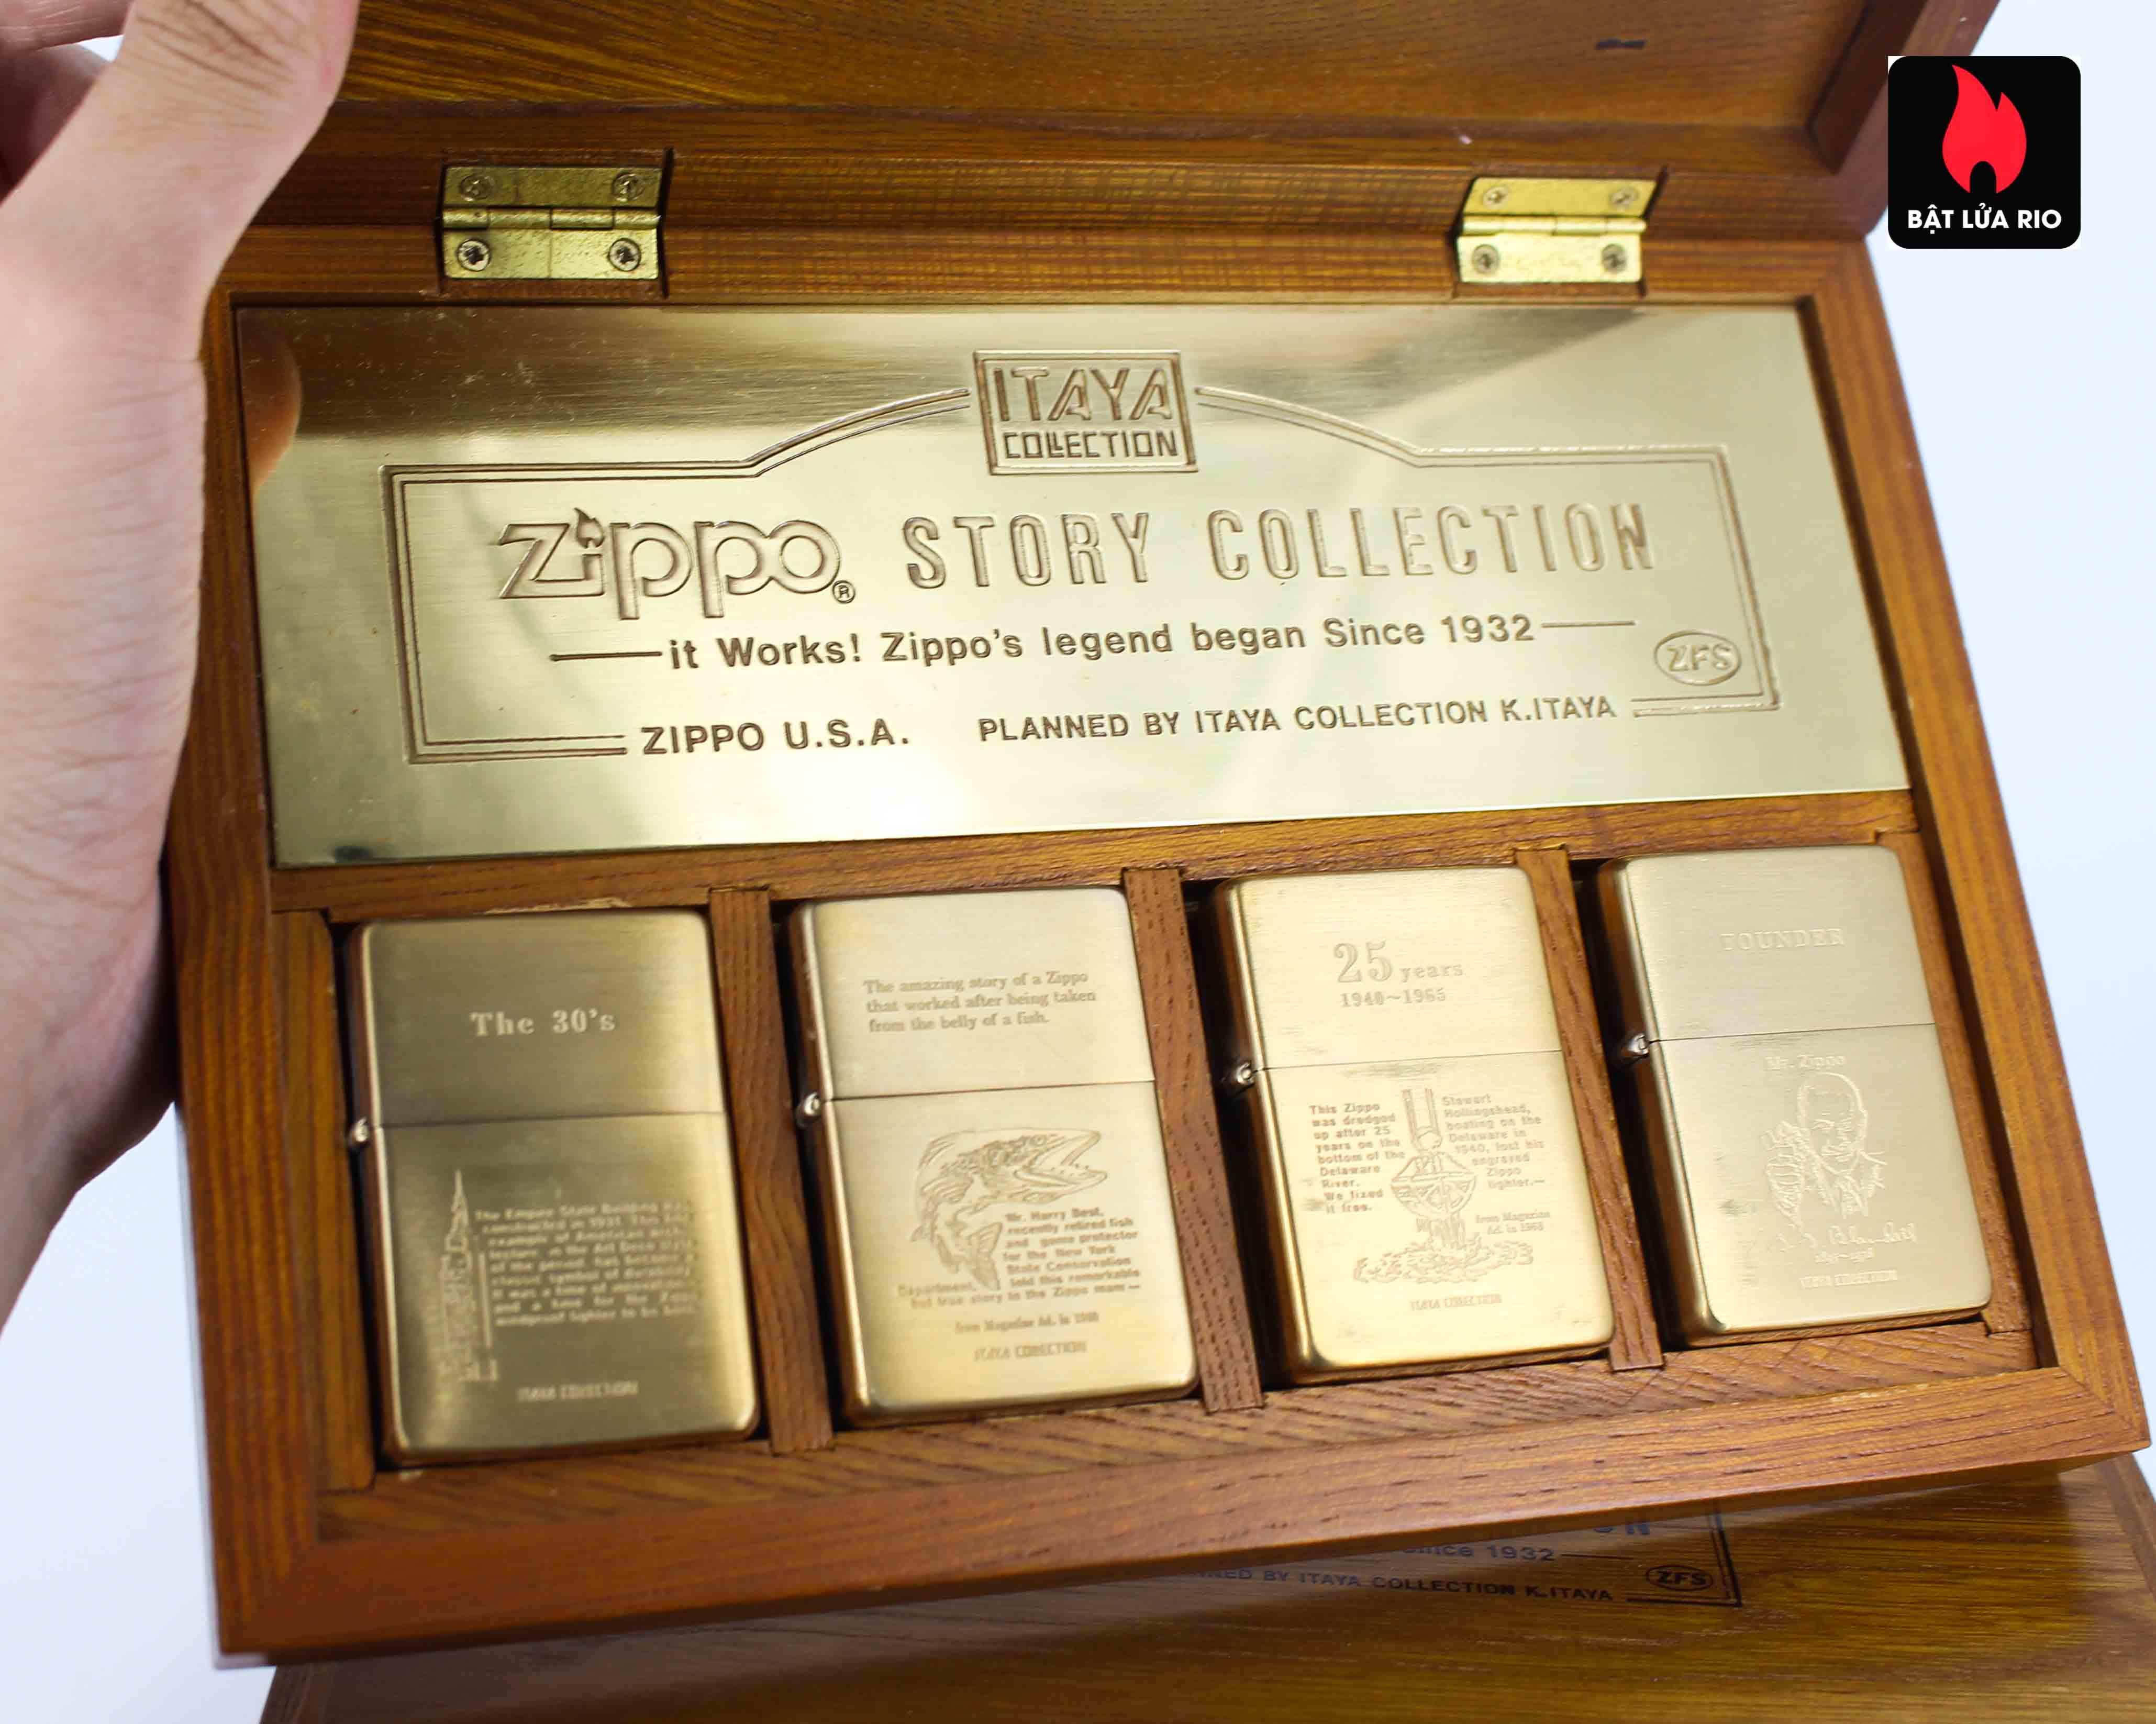 Zippo Serries 1993 - Itaya Colection - Zippo Story Collection 7